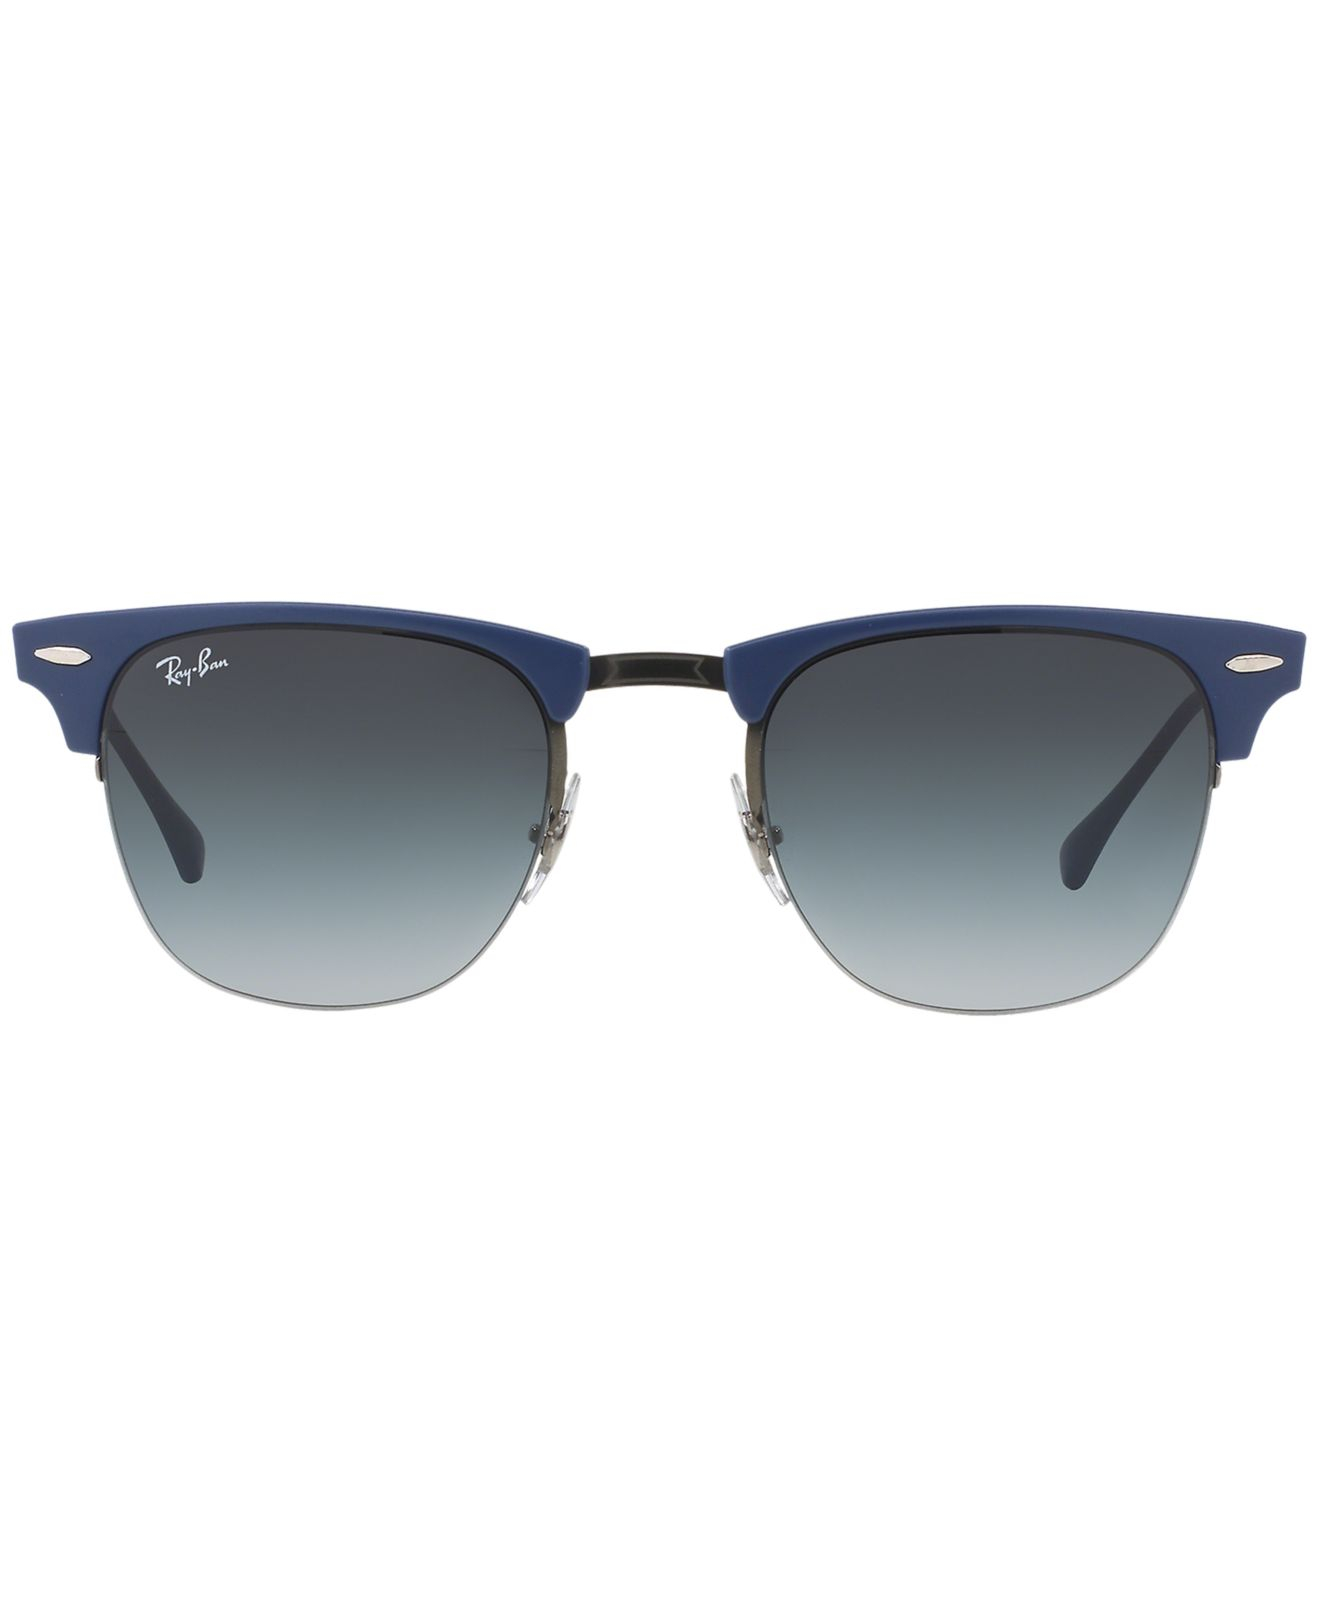 1f49472c07d48 ... discount code for gallery. previously sold at macys womens clubmaster  sunglasses womens ray ban clubmaster